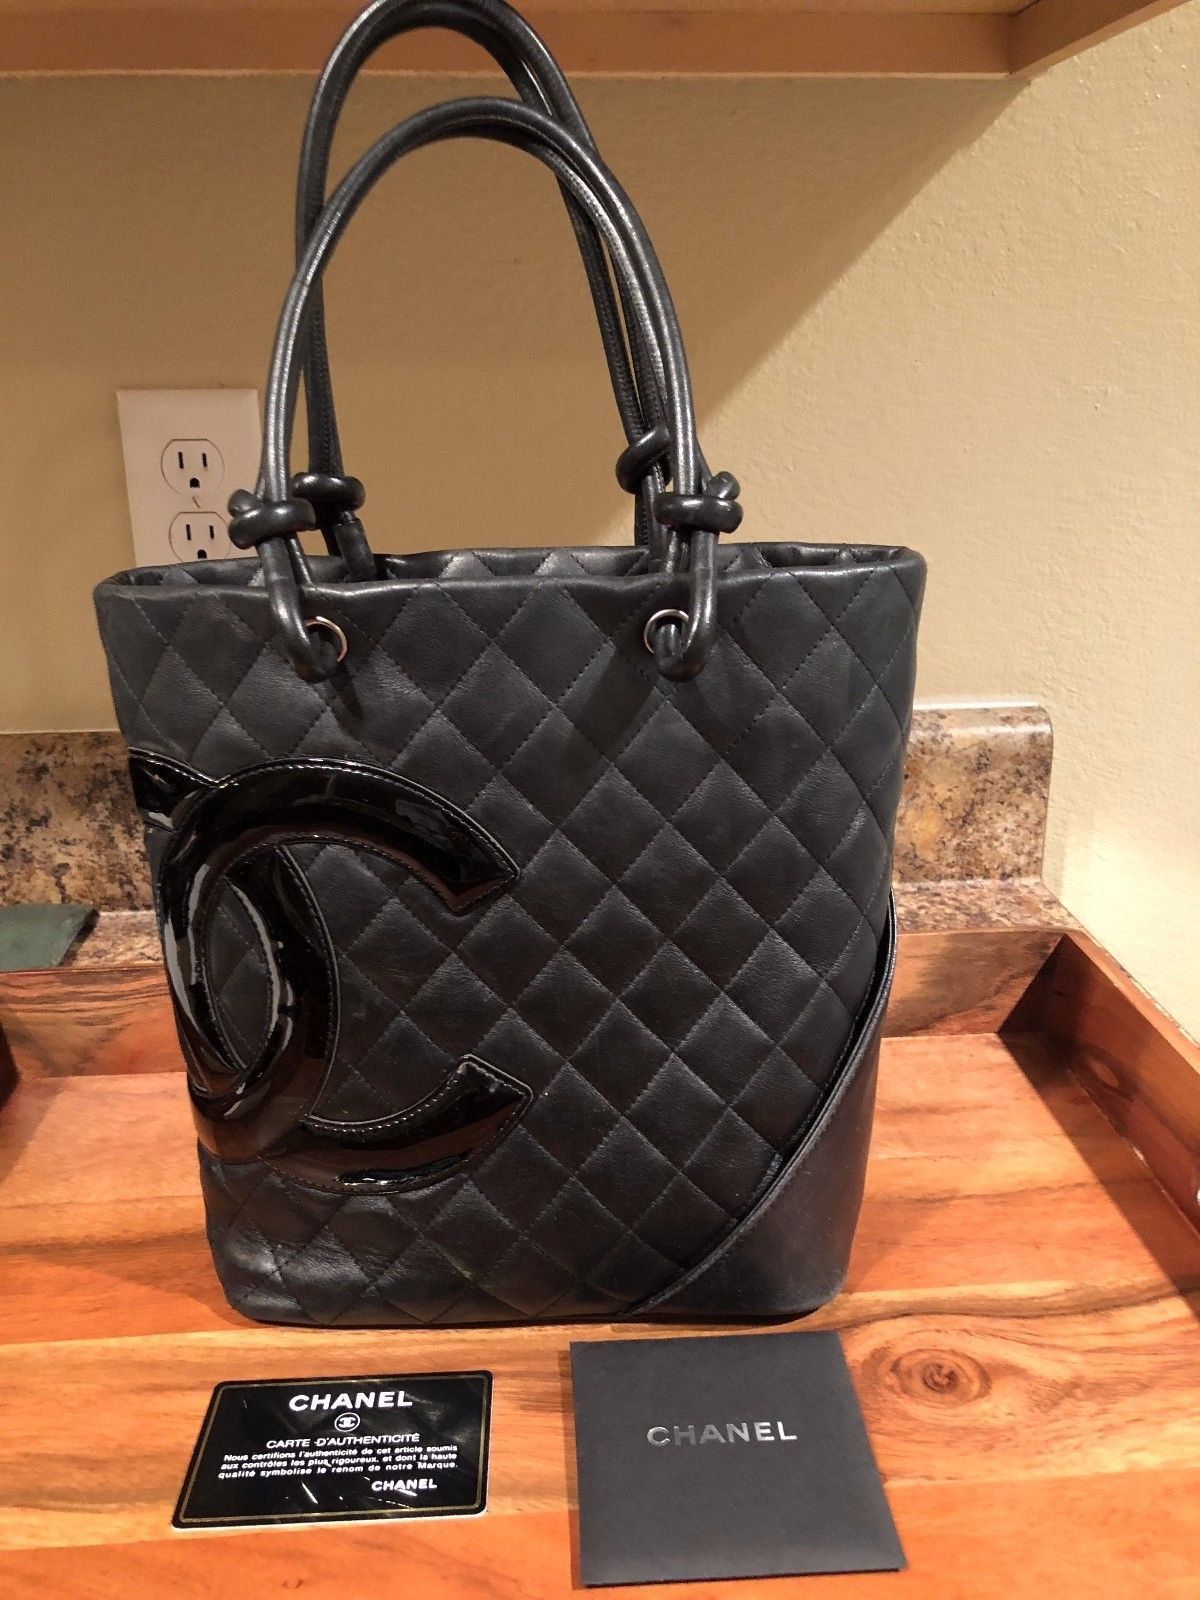 273730dc5d33 Chanel Quilted Tote Bag !00% Authentic (Purchased from Chanel Store) New   3495